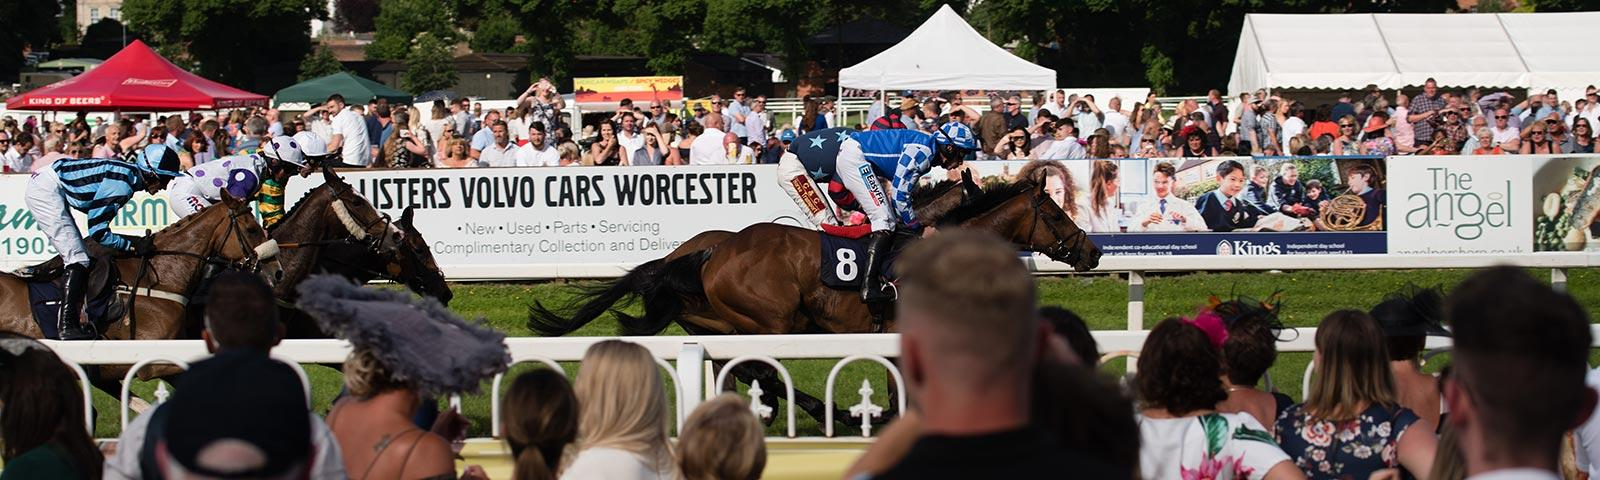 Crowds watching racing action at Worcester Racecourse.